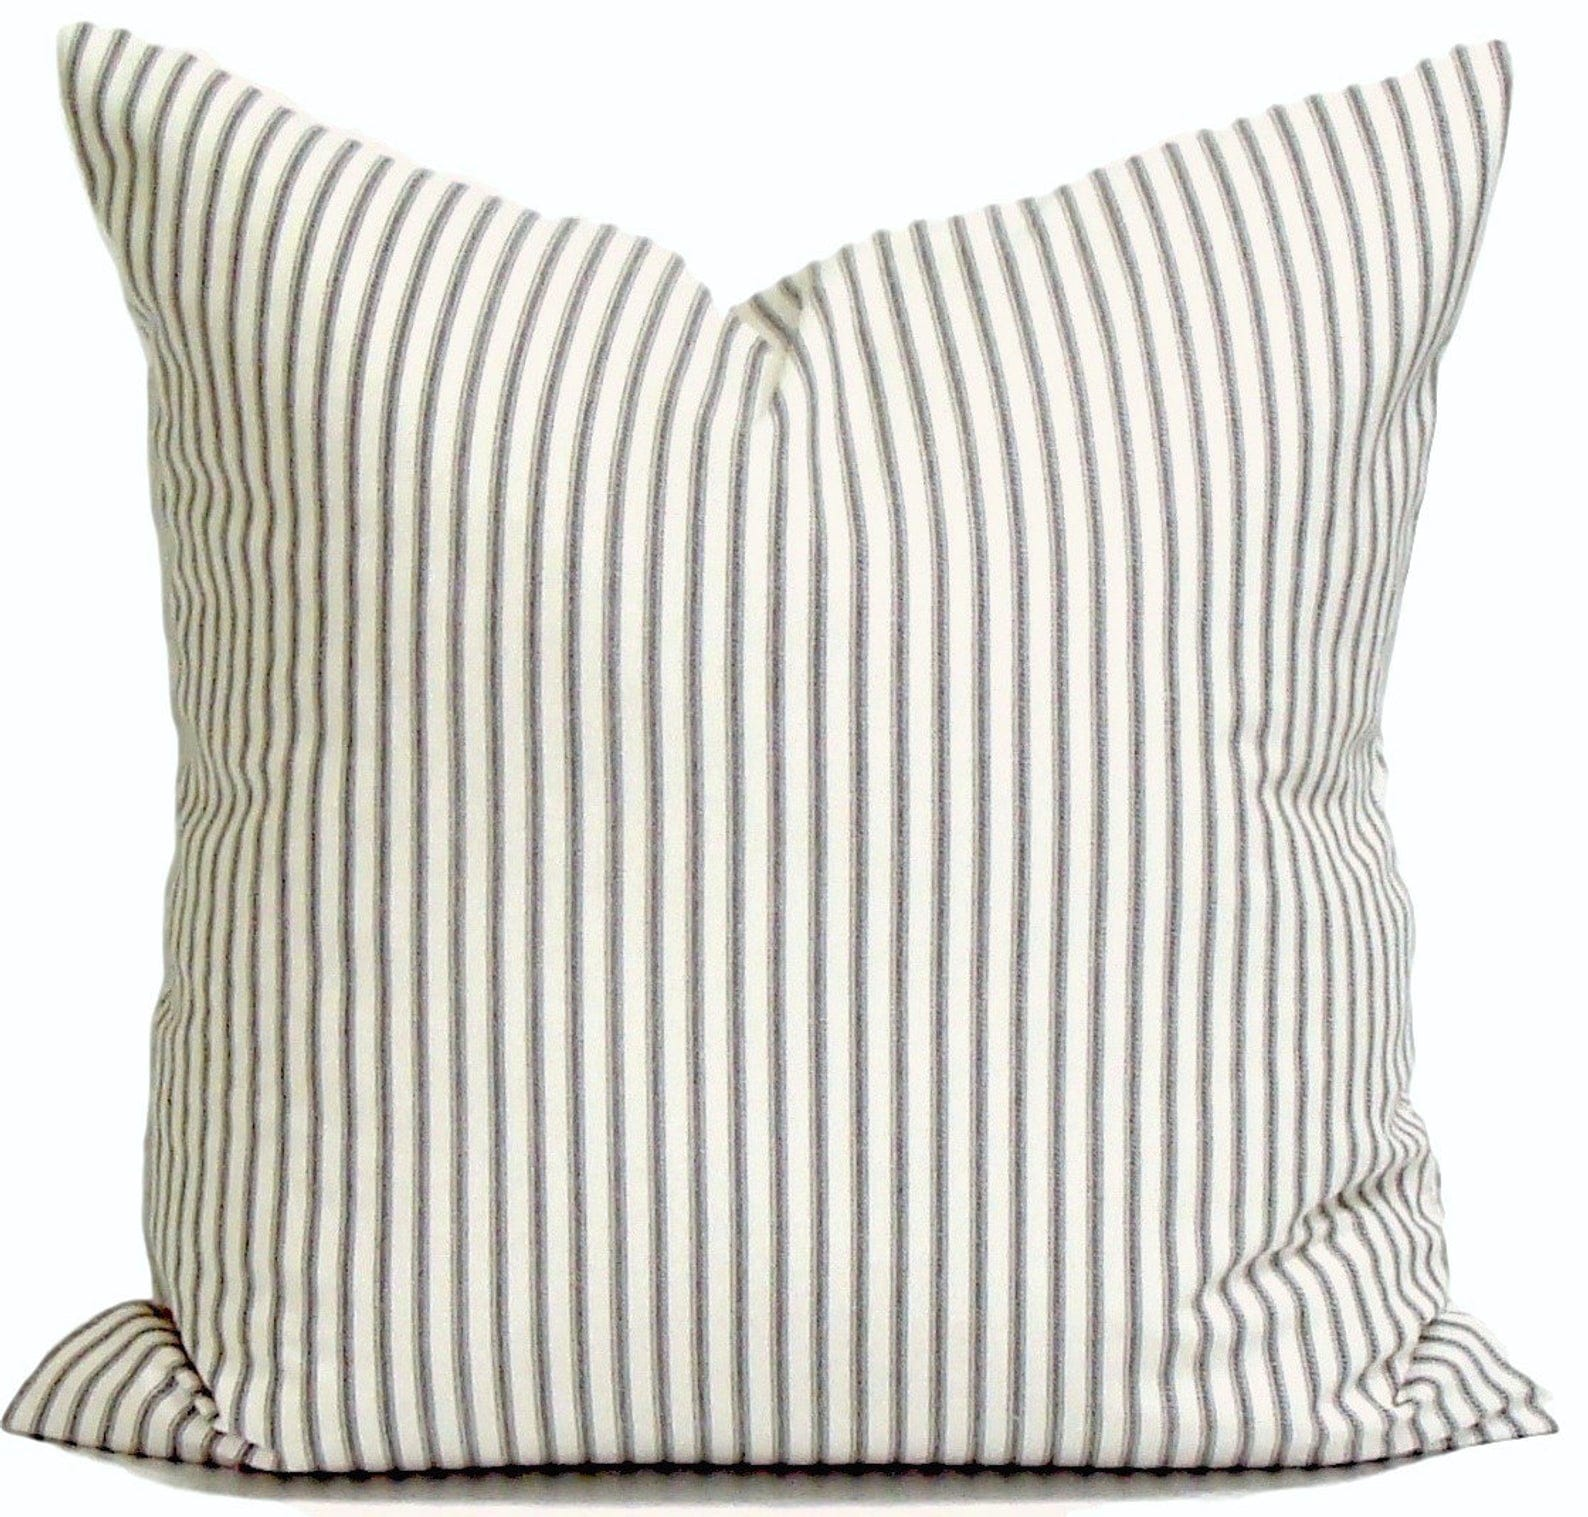 Ticking Stripe Pillow, Farmhouse Decor, Farmhouse Pillow, Ticking Pillow Cover, Charcoal Throw Pillow Cover